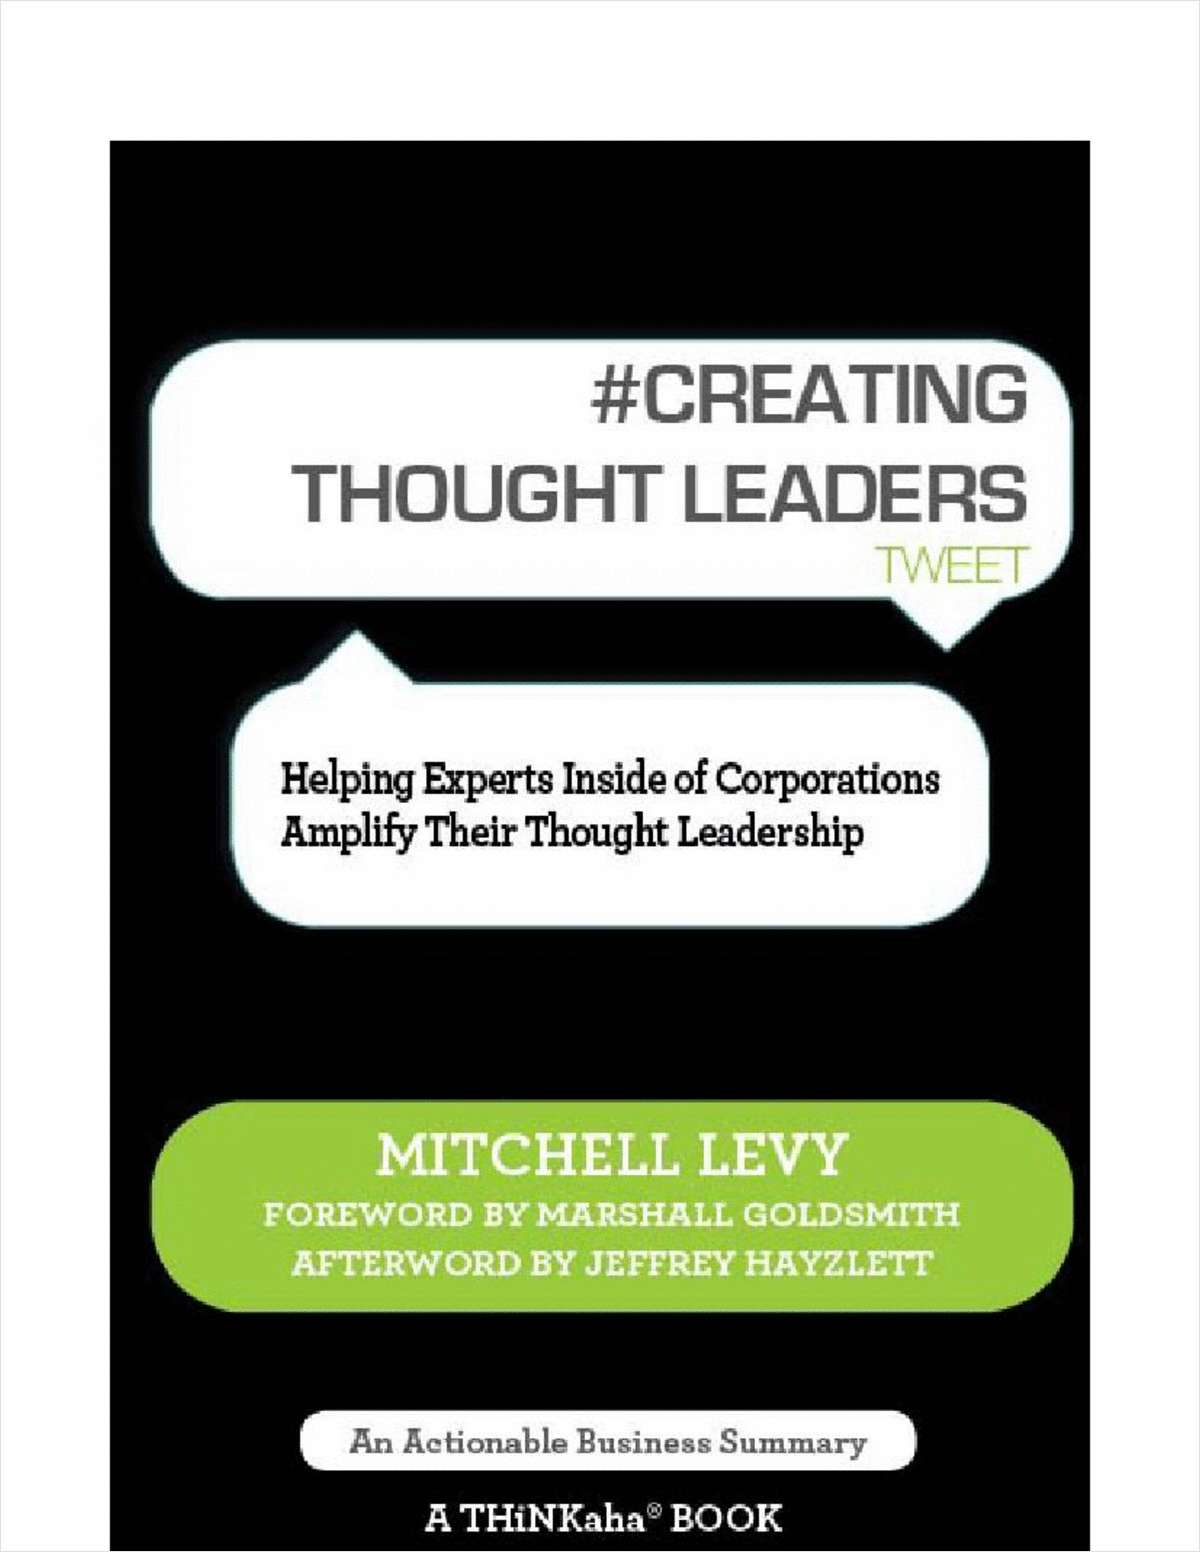 #CREATING THOUGHT LEADERS tweet Book01 (Normally $11.95)